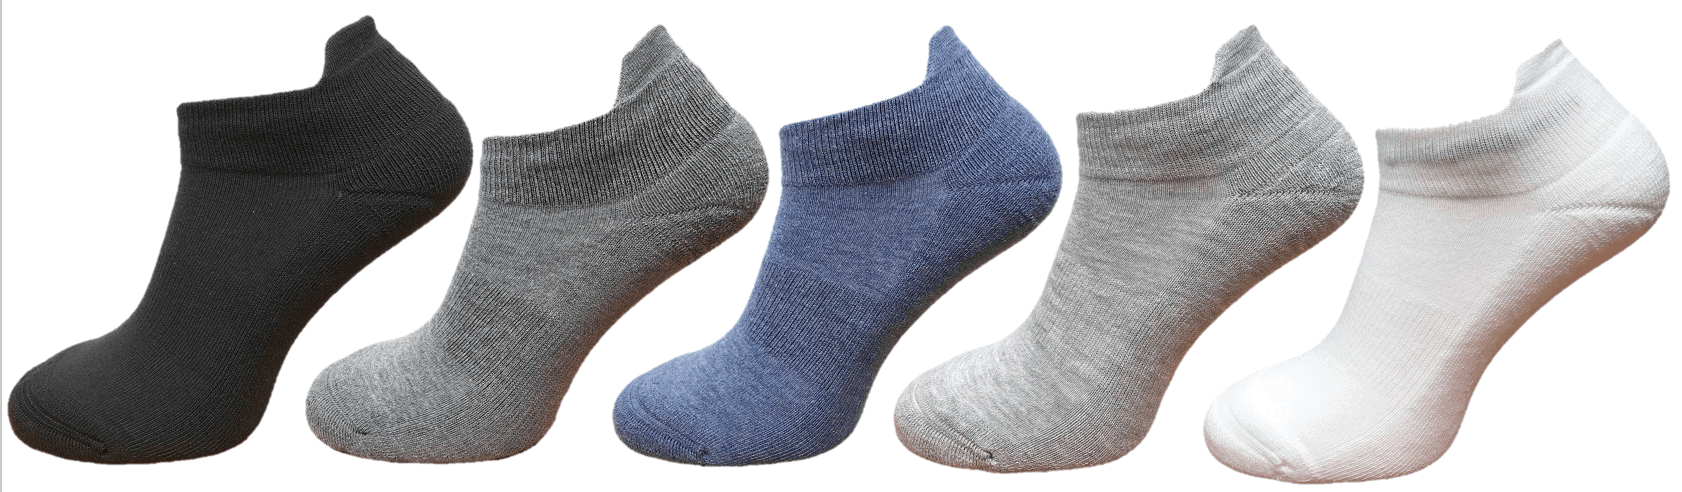 ankle socks with ankle support and protection mixed colours